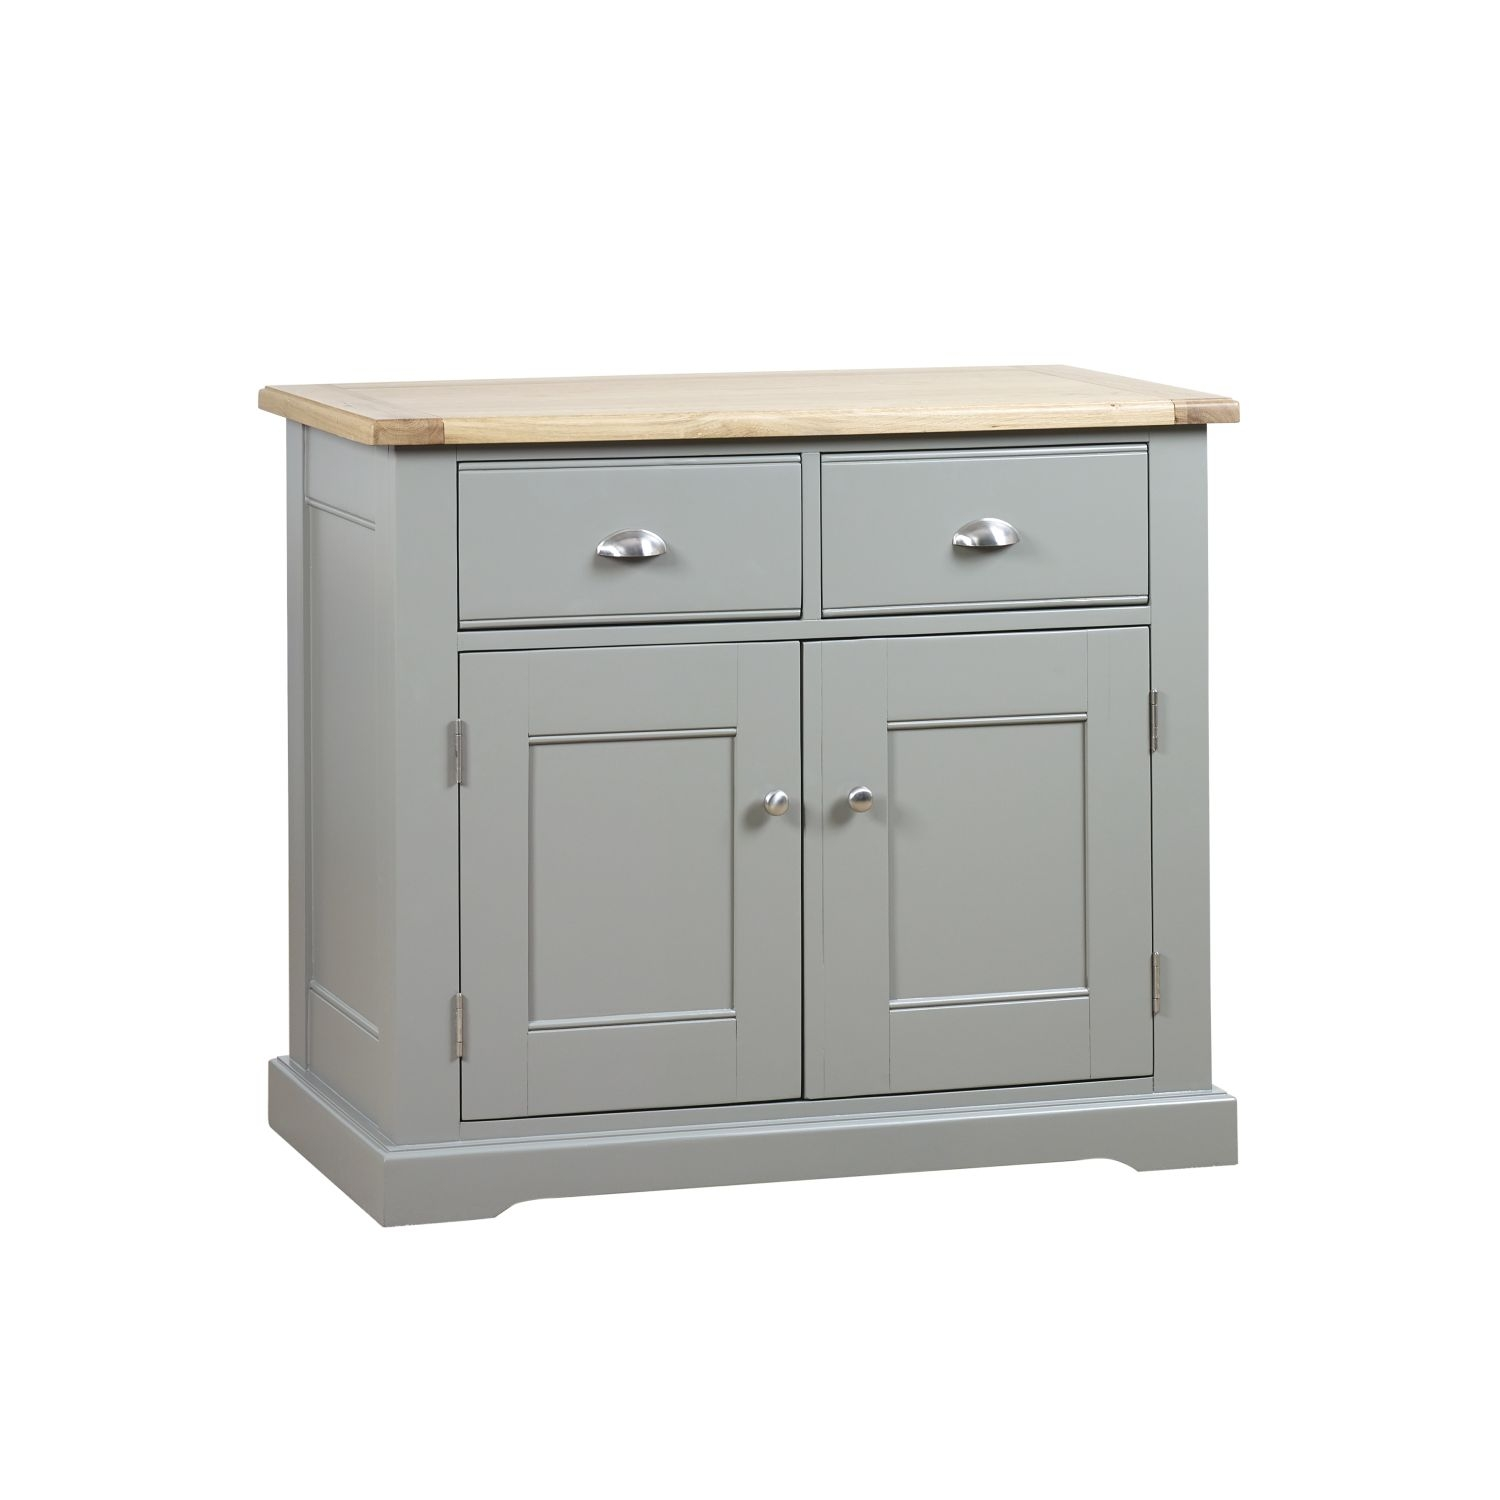 Image of Casa Wexford Small Sideboard With Drawers